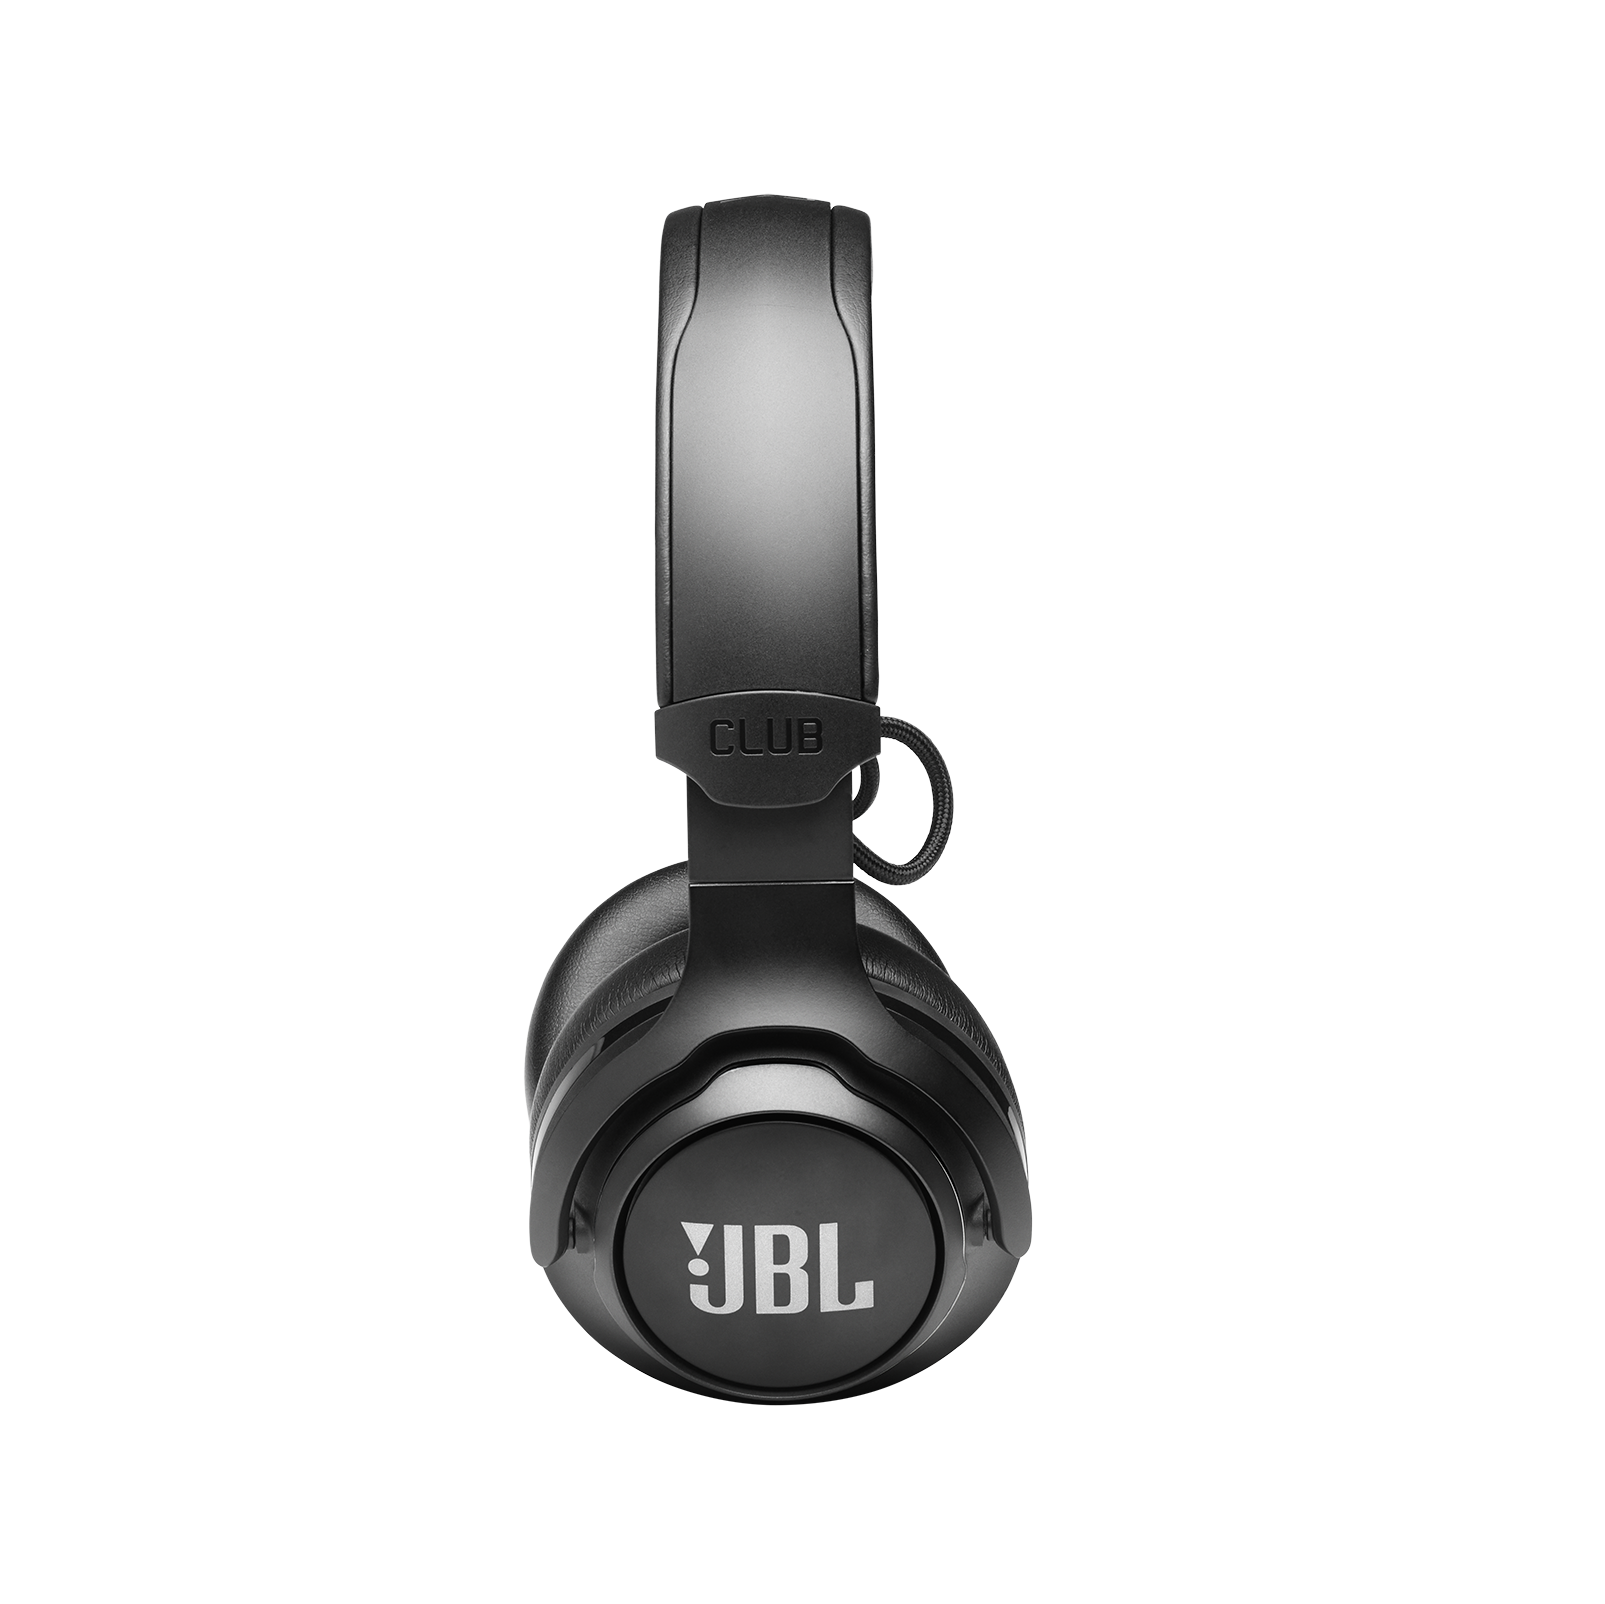 JBL CLUB 700BT - Black - Wireless on-ear headphones - Detailshot 5